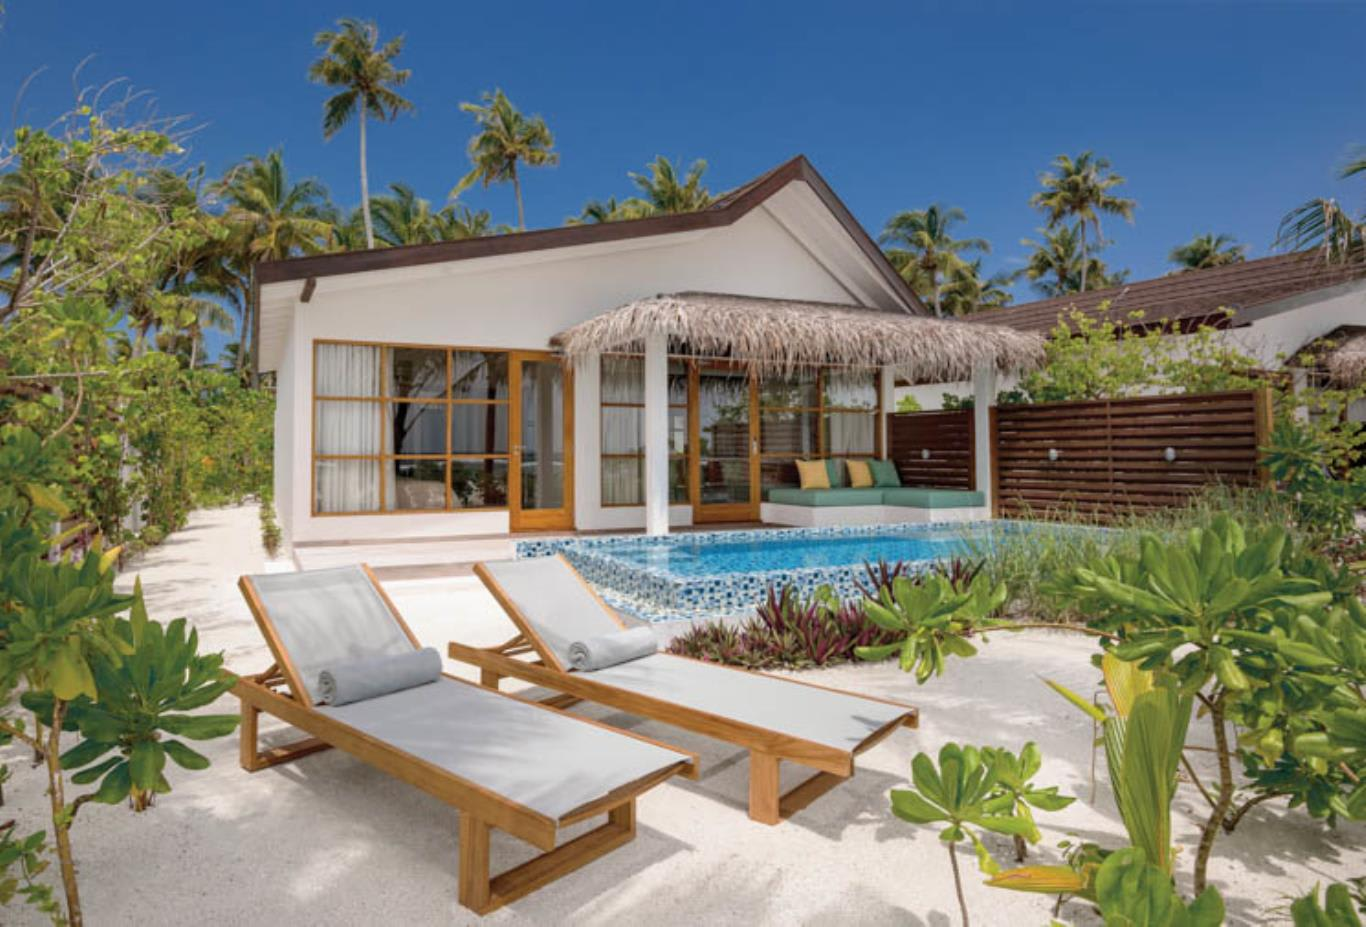 Beach Family Suites with Pool exterior view